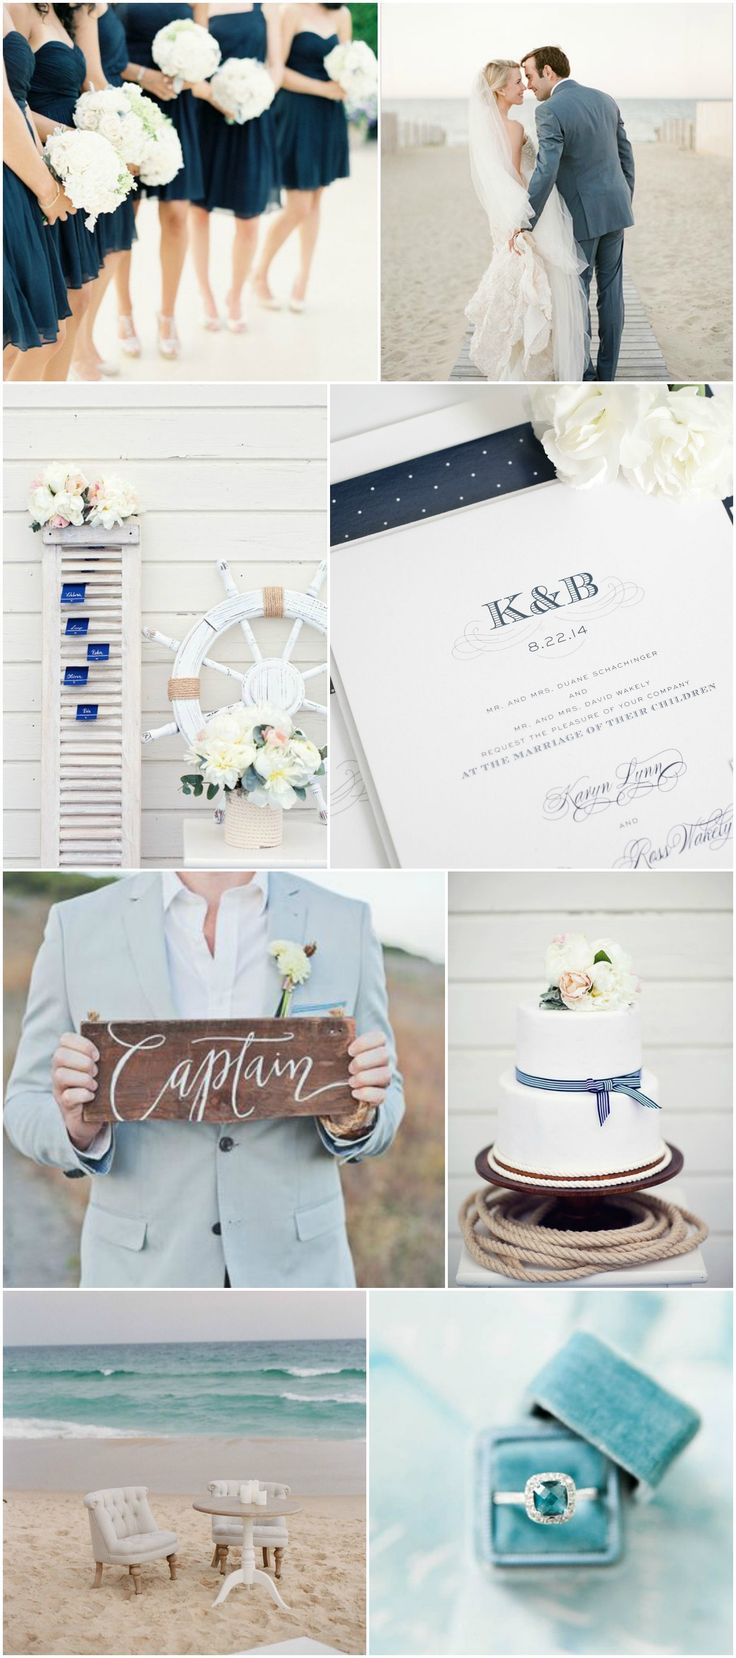 417 best WEDDING: details// ideas images on Pinterest | Boho wedding ...